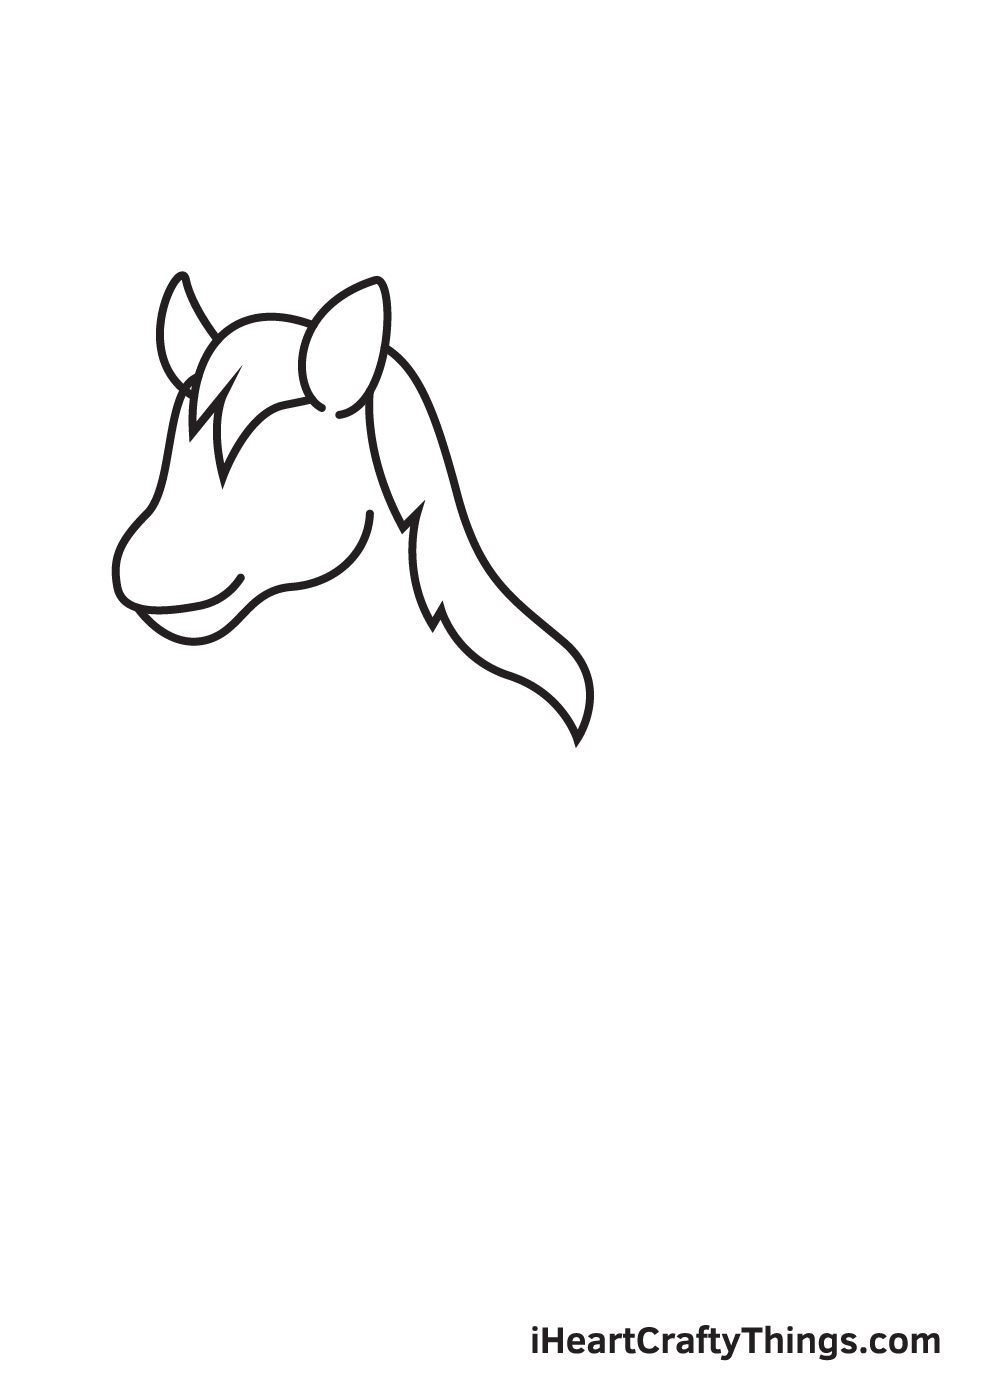 horse drawing - step 3